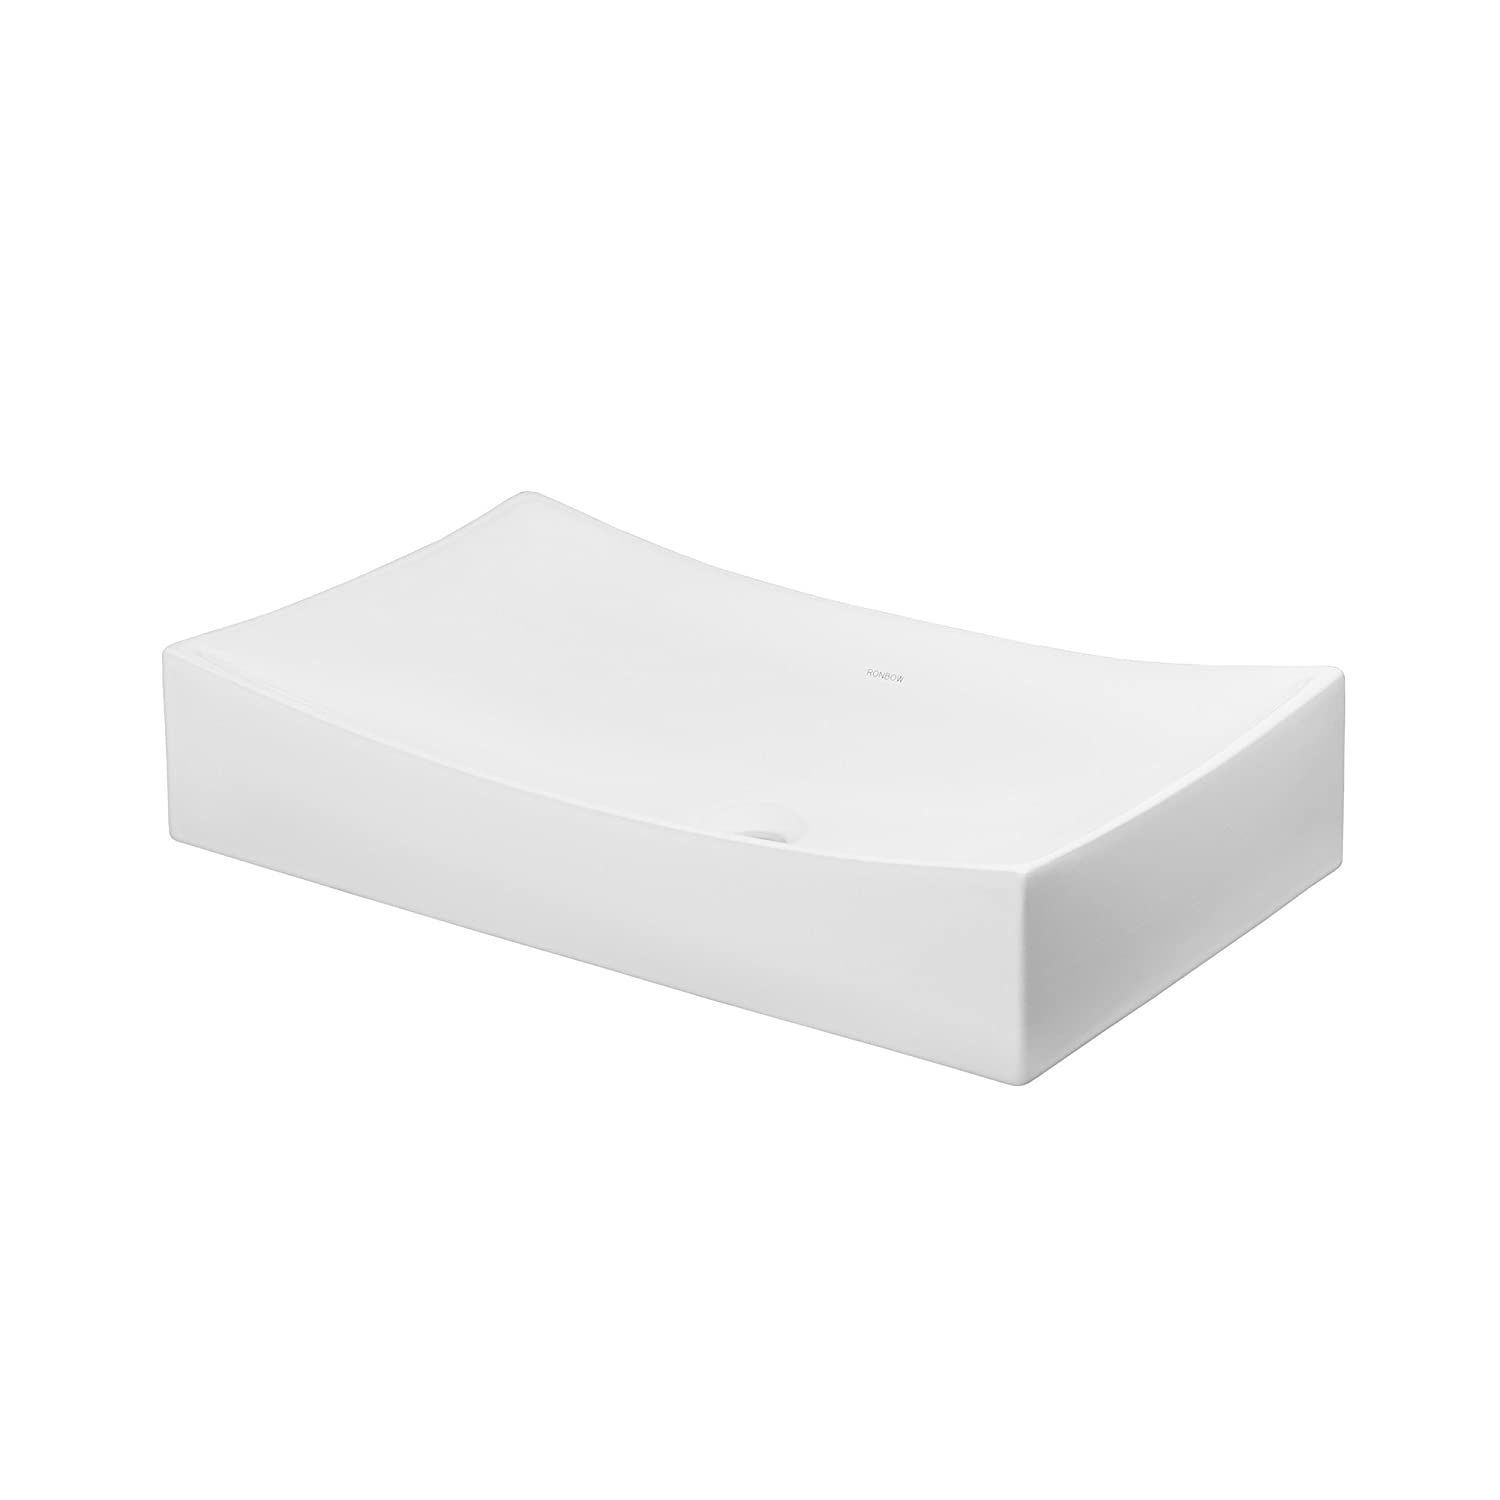 Ronbow Status 26 Inch Above Counter Ceramic Bathroom Vanity Vessel Sink In White 200032 Wh Chic